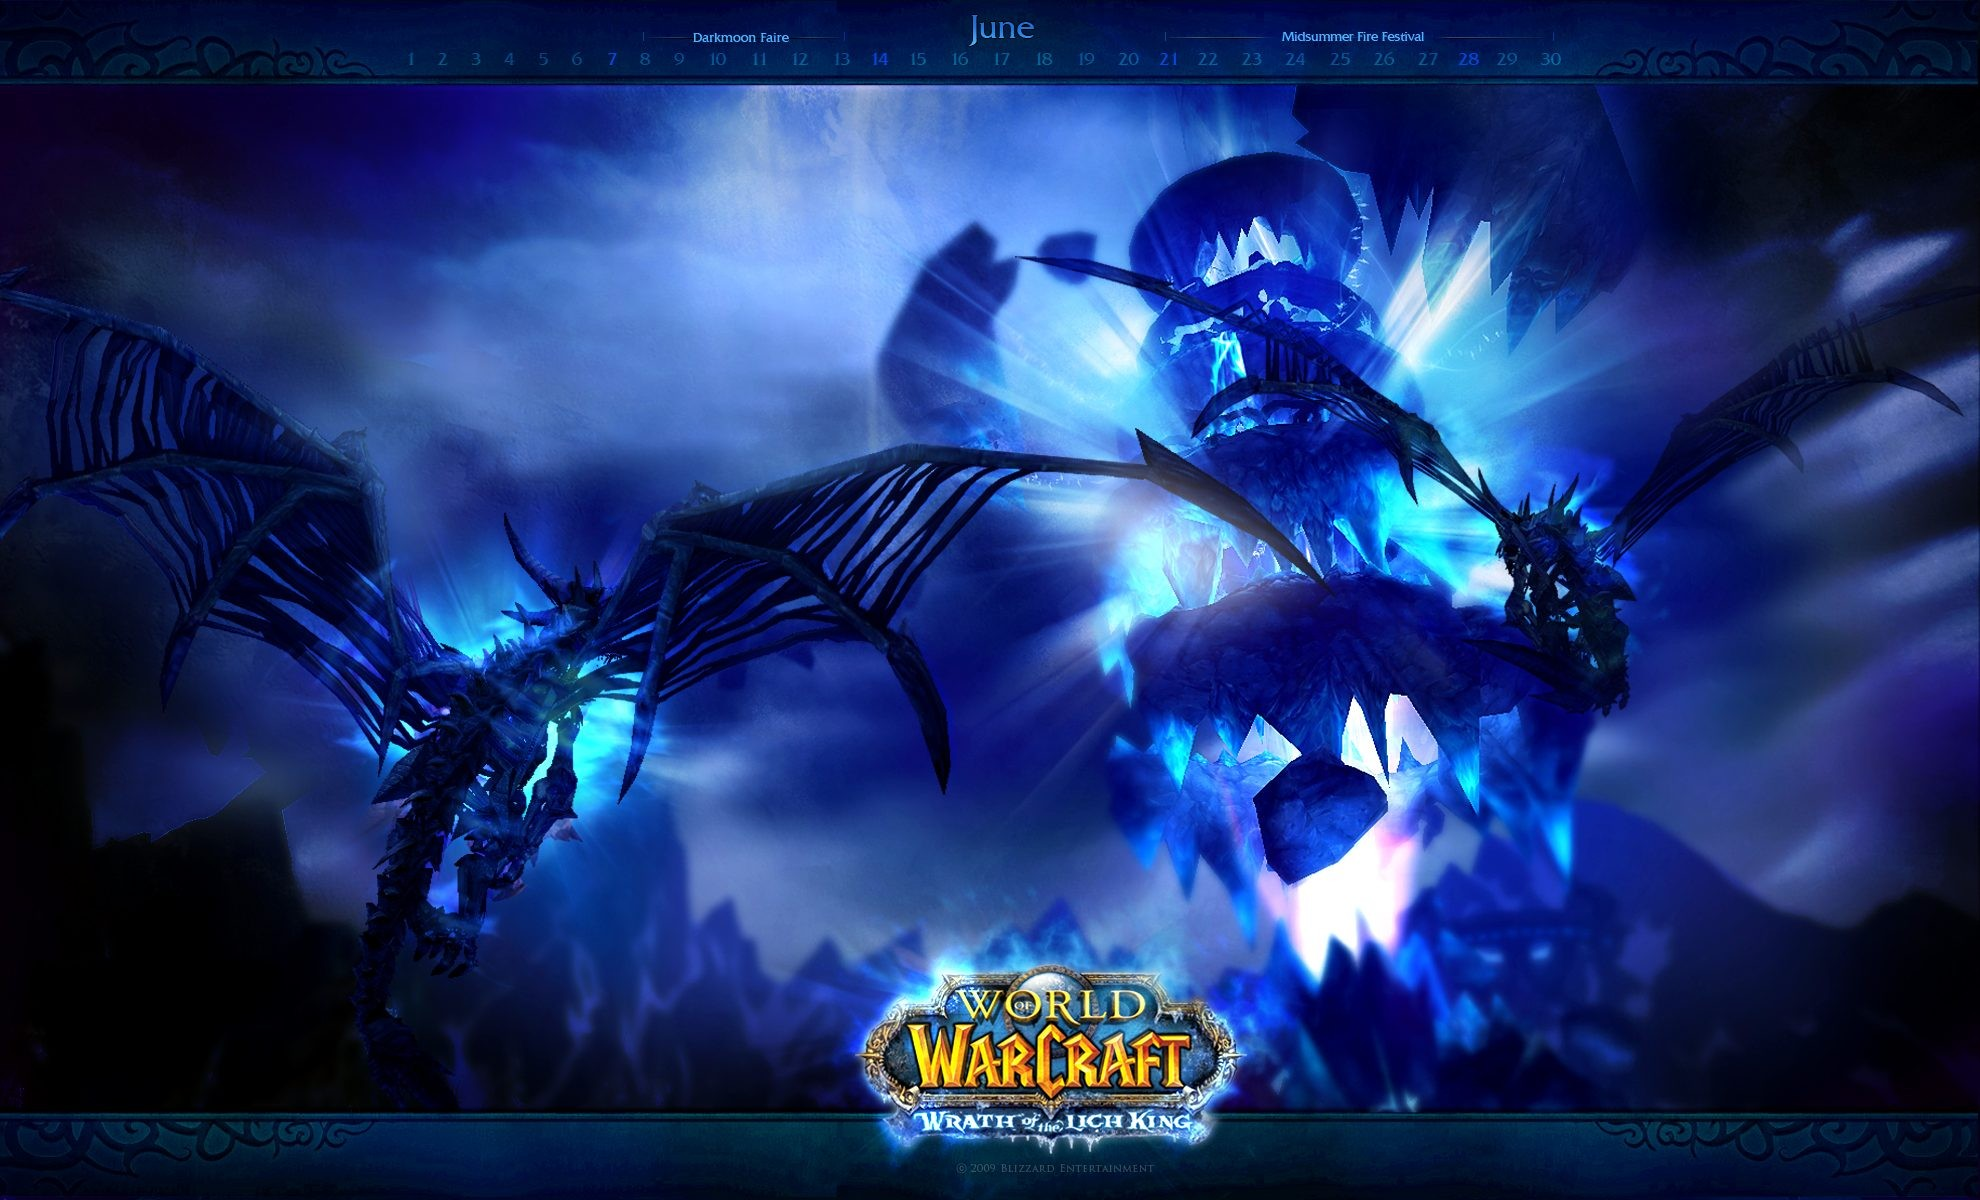 World Of Warcraft Wallpaper Hd Download Free Awesome Wallpapers